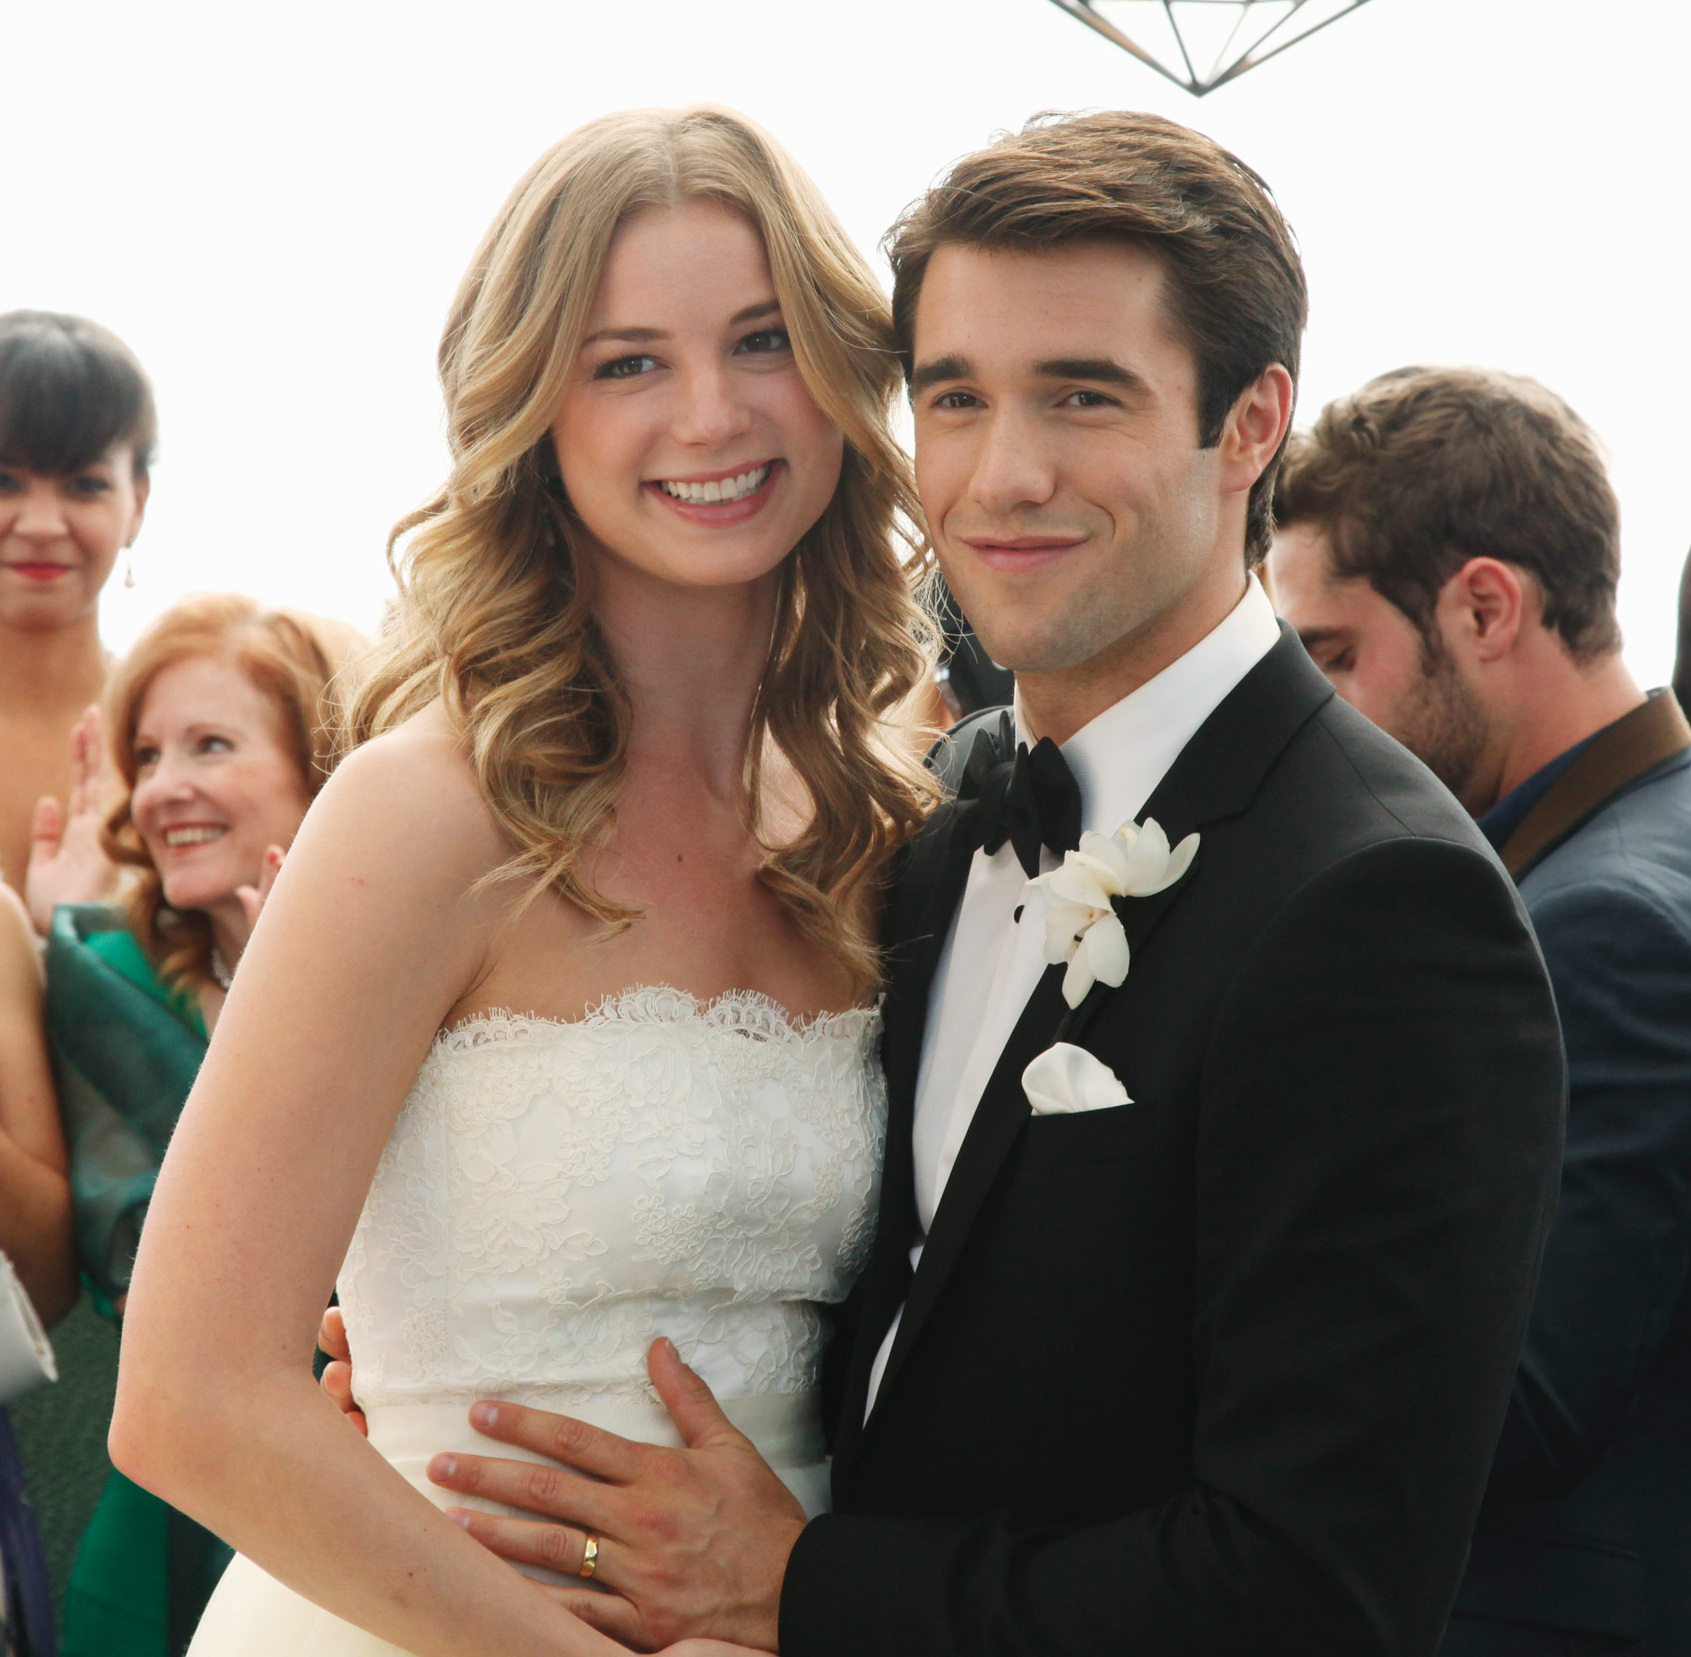 Emily VanCamp and Josh Bowman are married - CNN